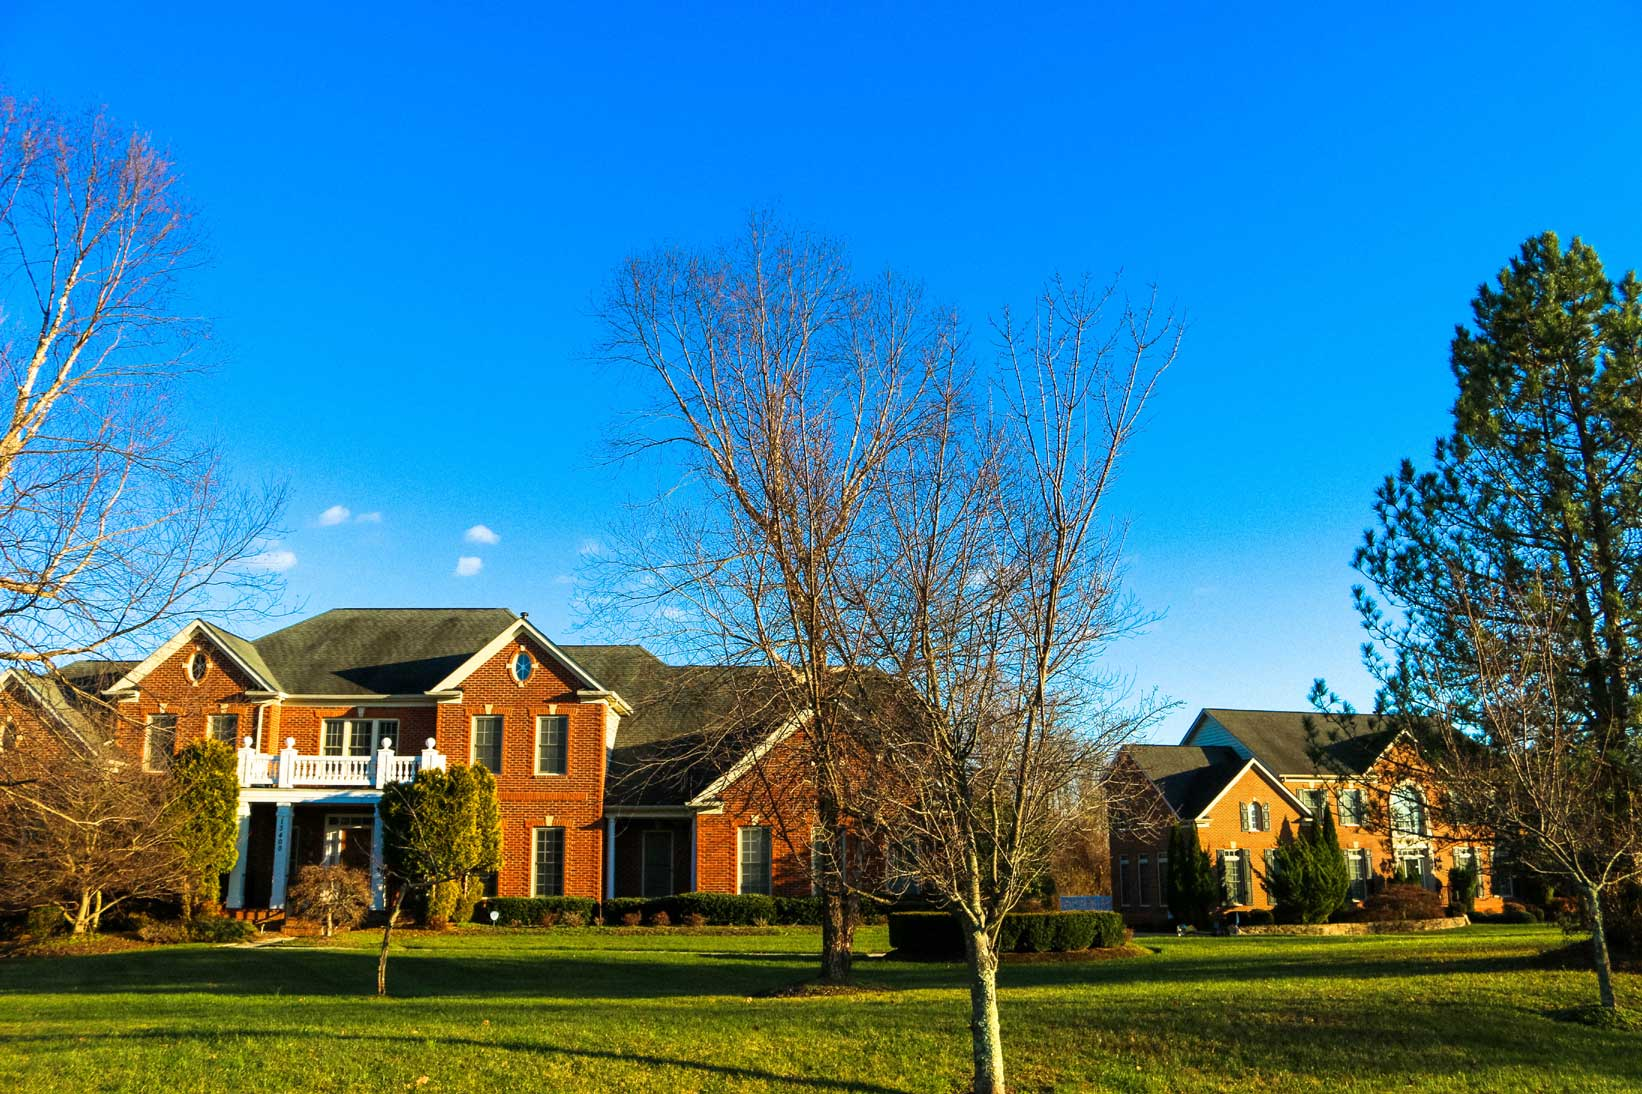 Single family homes in Potomac, MD